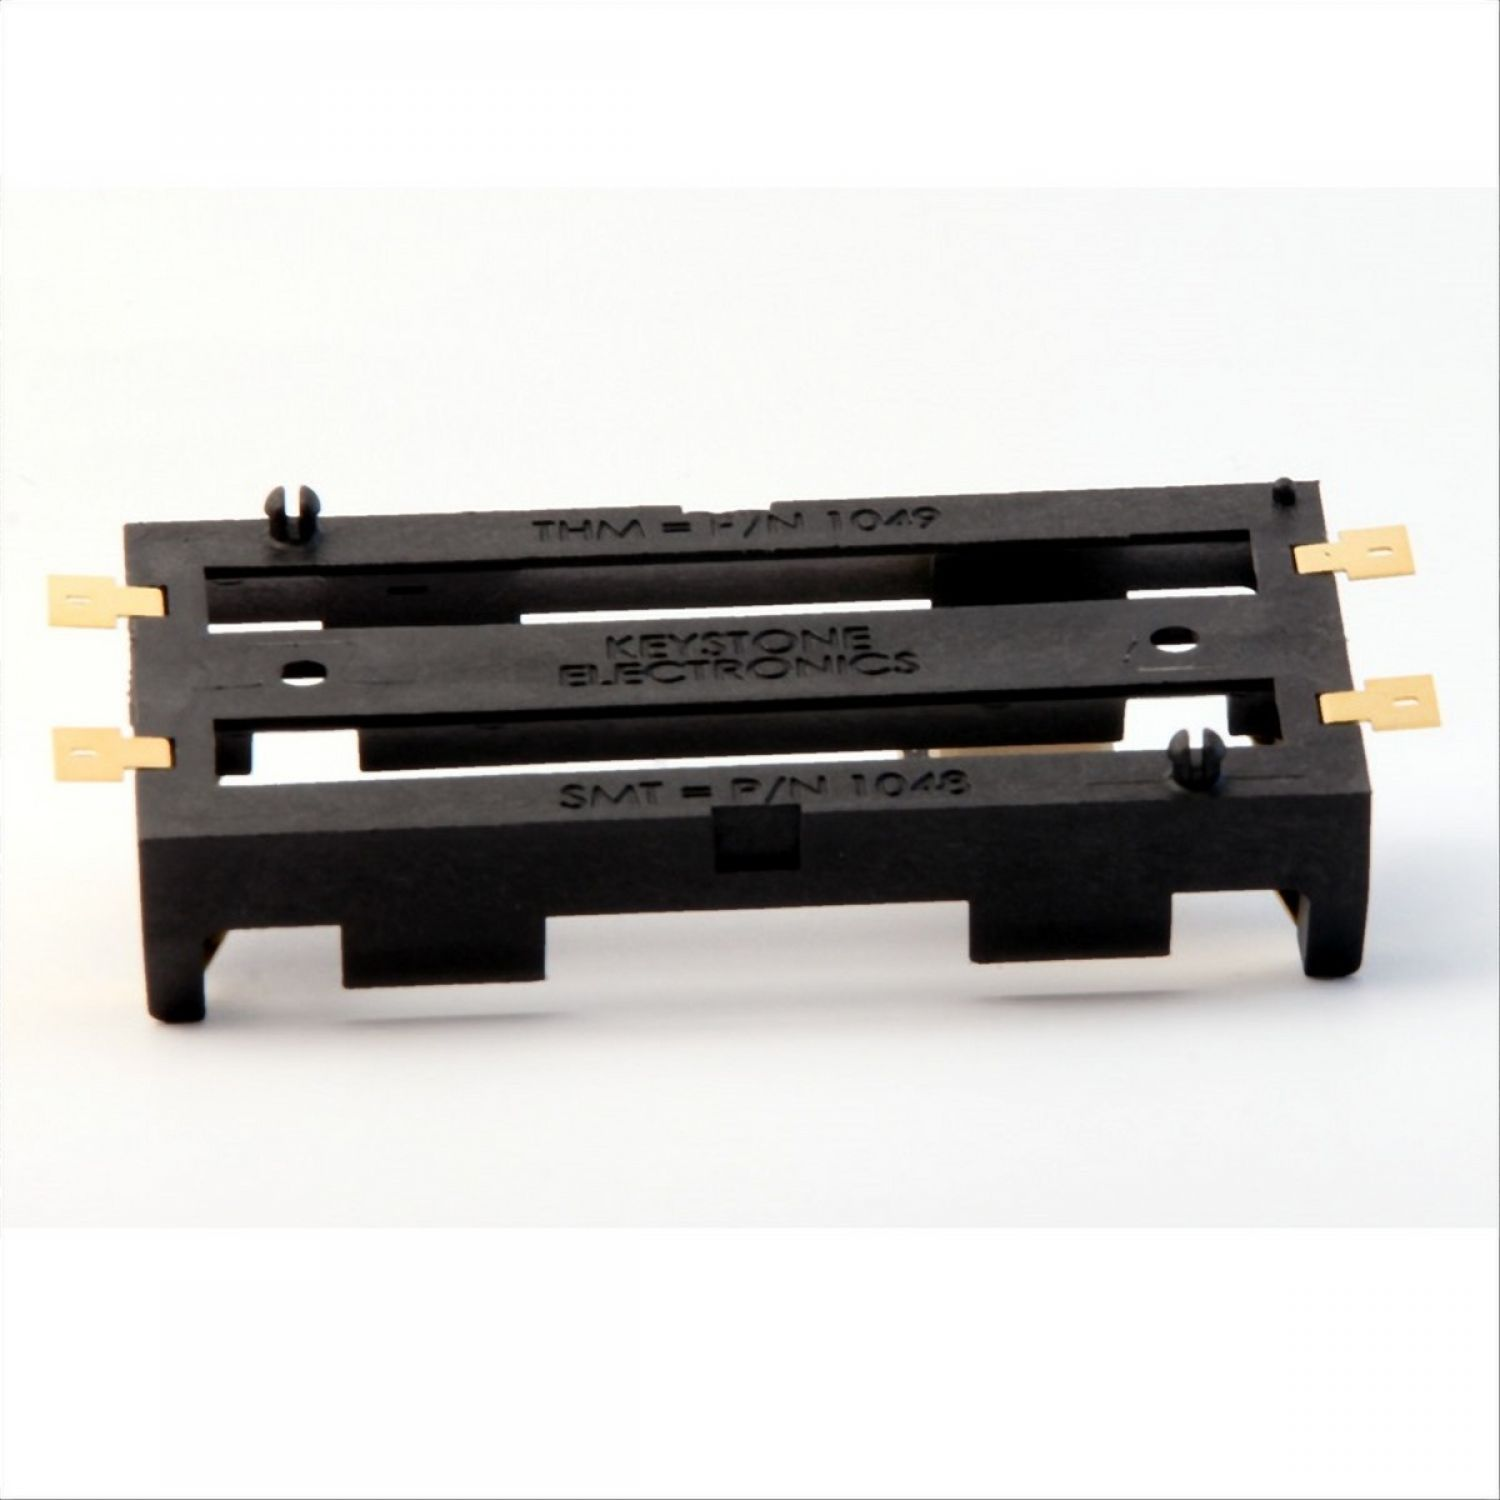 Wiha 91269 Metal Bench Top Stand for Precision Tools